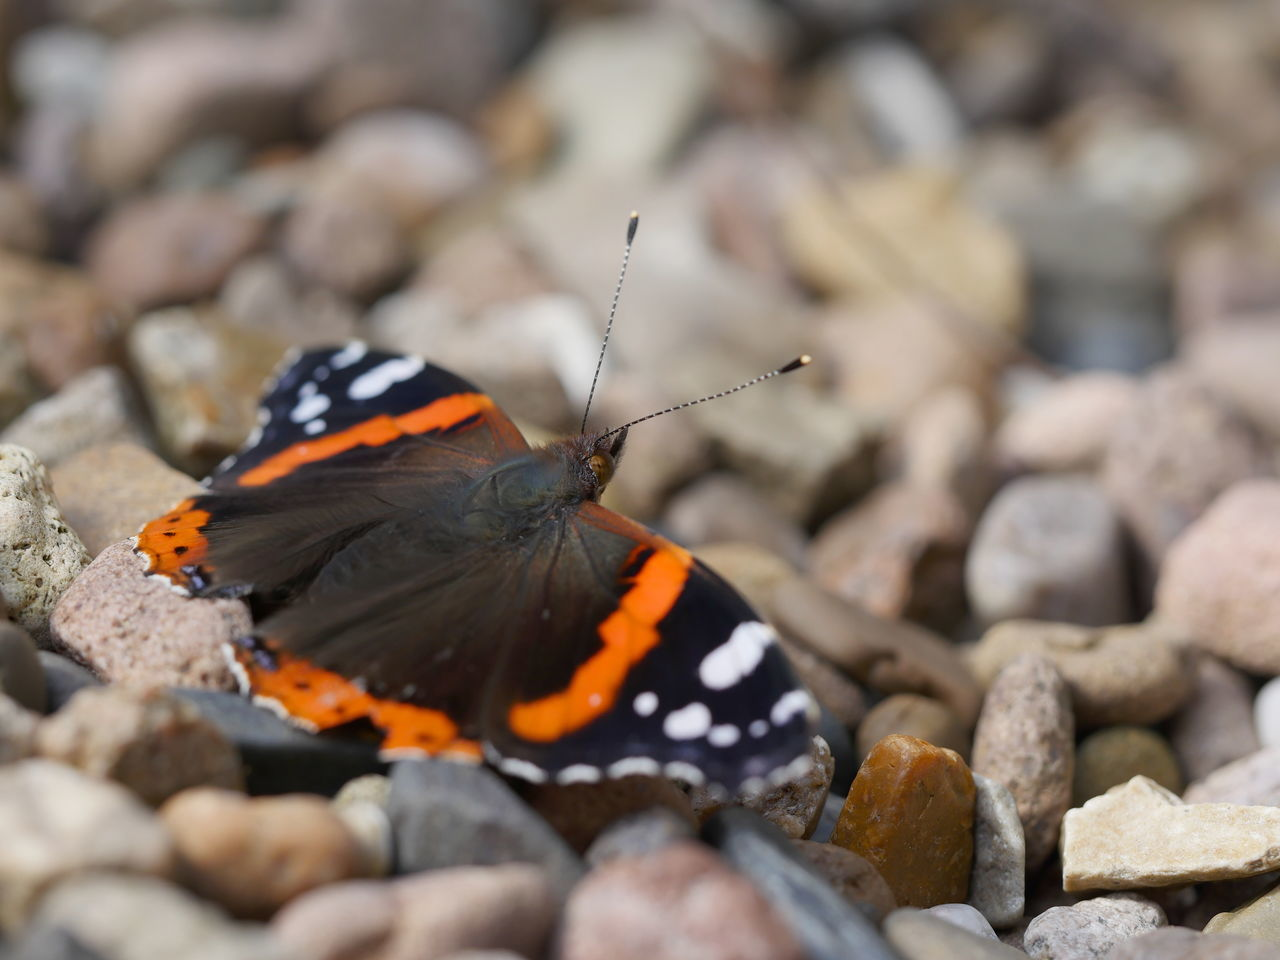 Animals Butterfly Insect Macro Nature Outdoors Pebbles Perspective Red Admiral Selective Focus Capture The Moment Exceptional Photographs Close-up From My Point Of View Taking Photos No People Macro Nature EyeEm Nature Lover Animal Themes